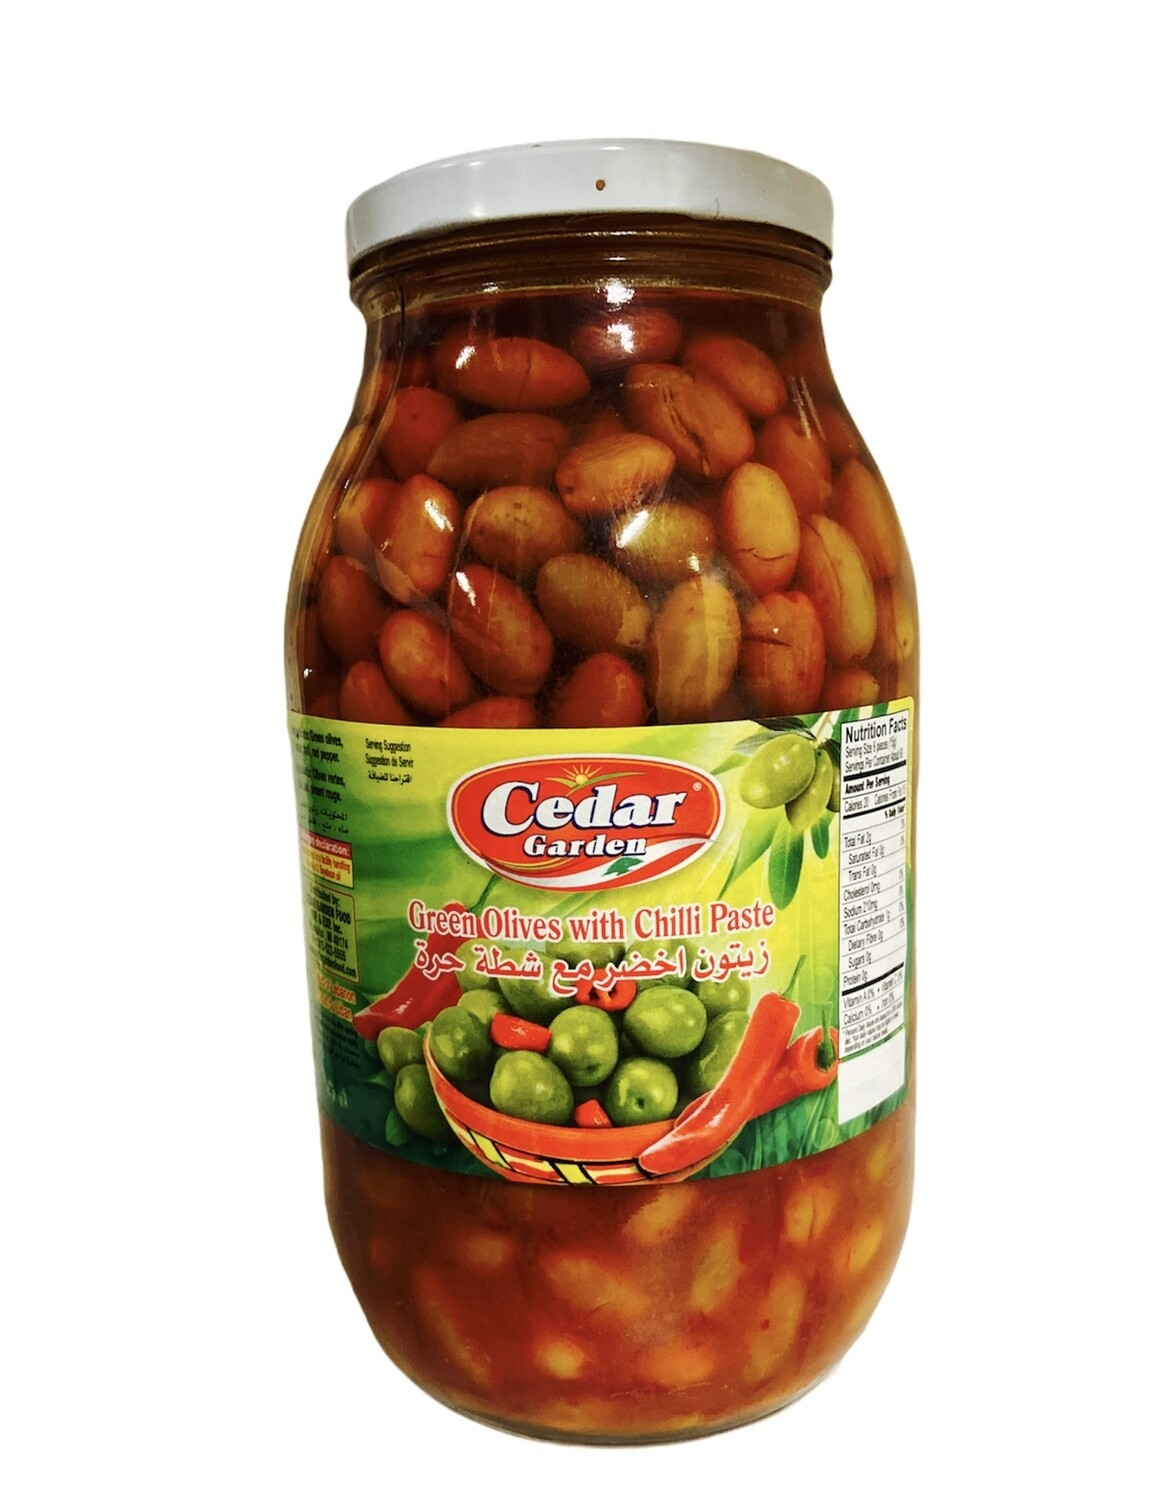 Cedar Garden Green Olives With Chili Paste 4x3200g